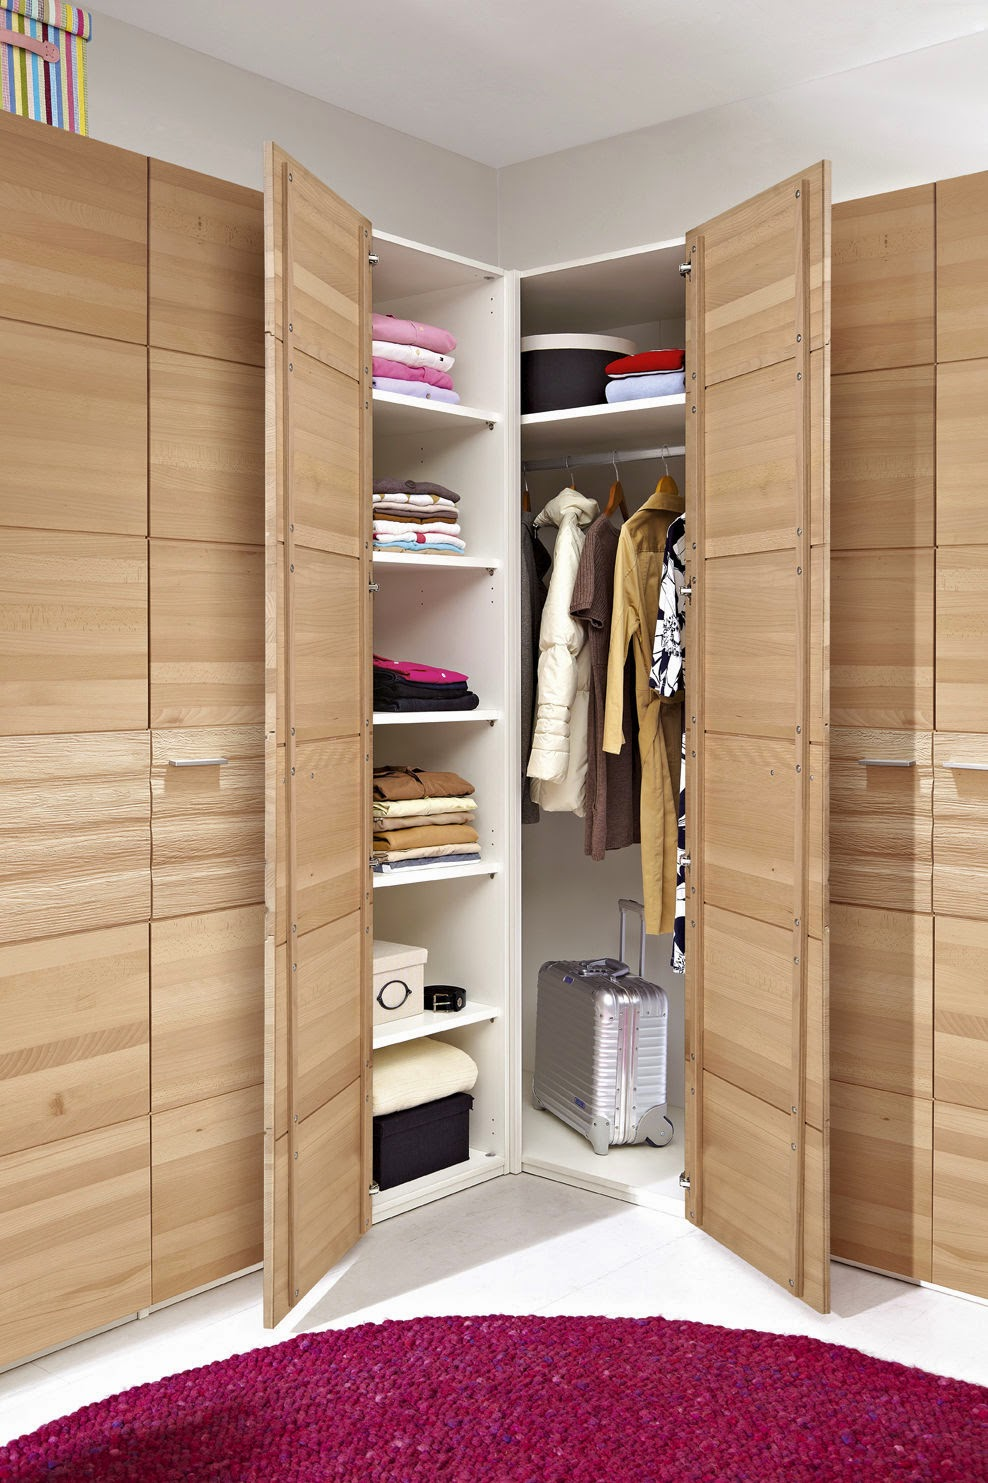 The corner wardrobe your spacious solution for the Corner wardrobe ideas